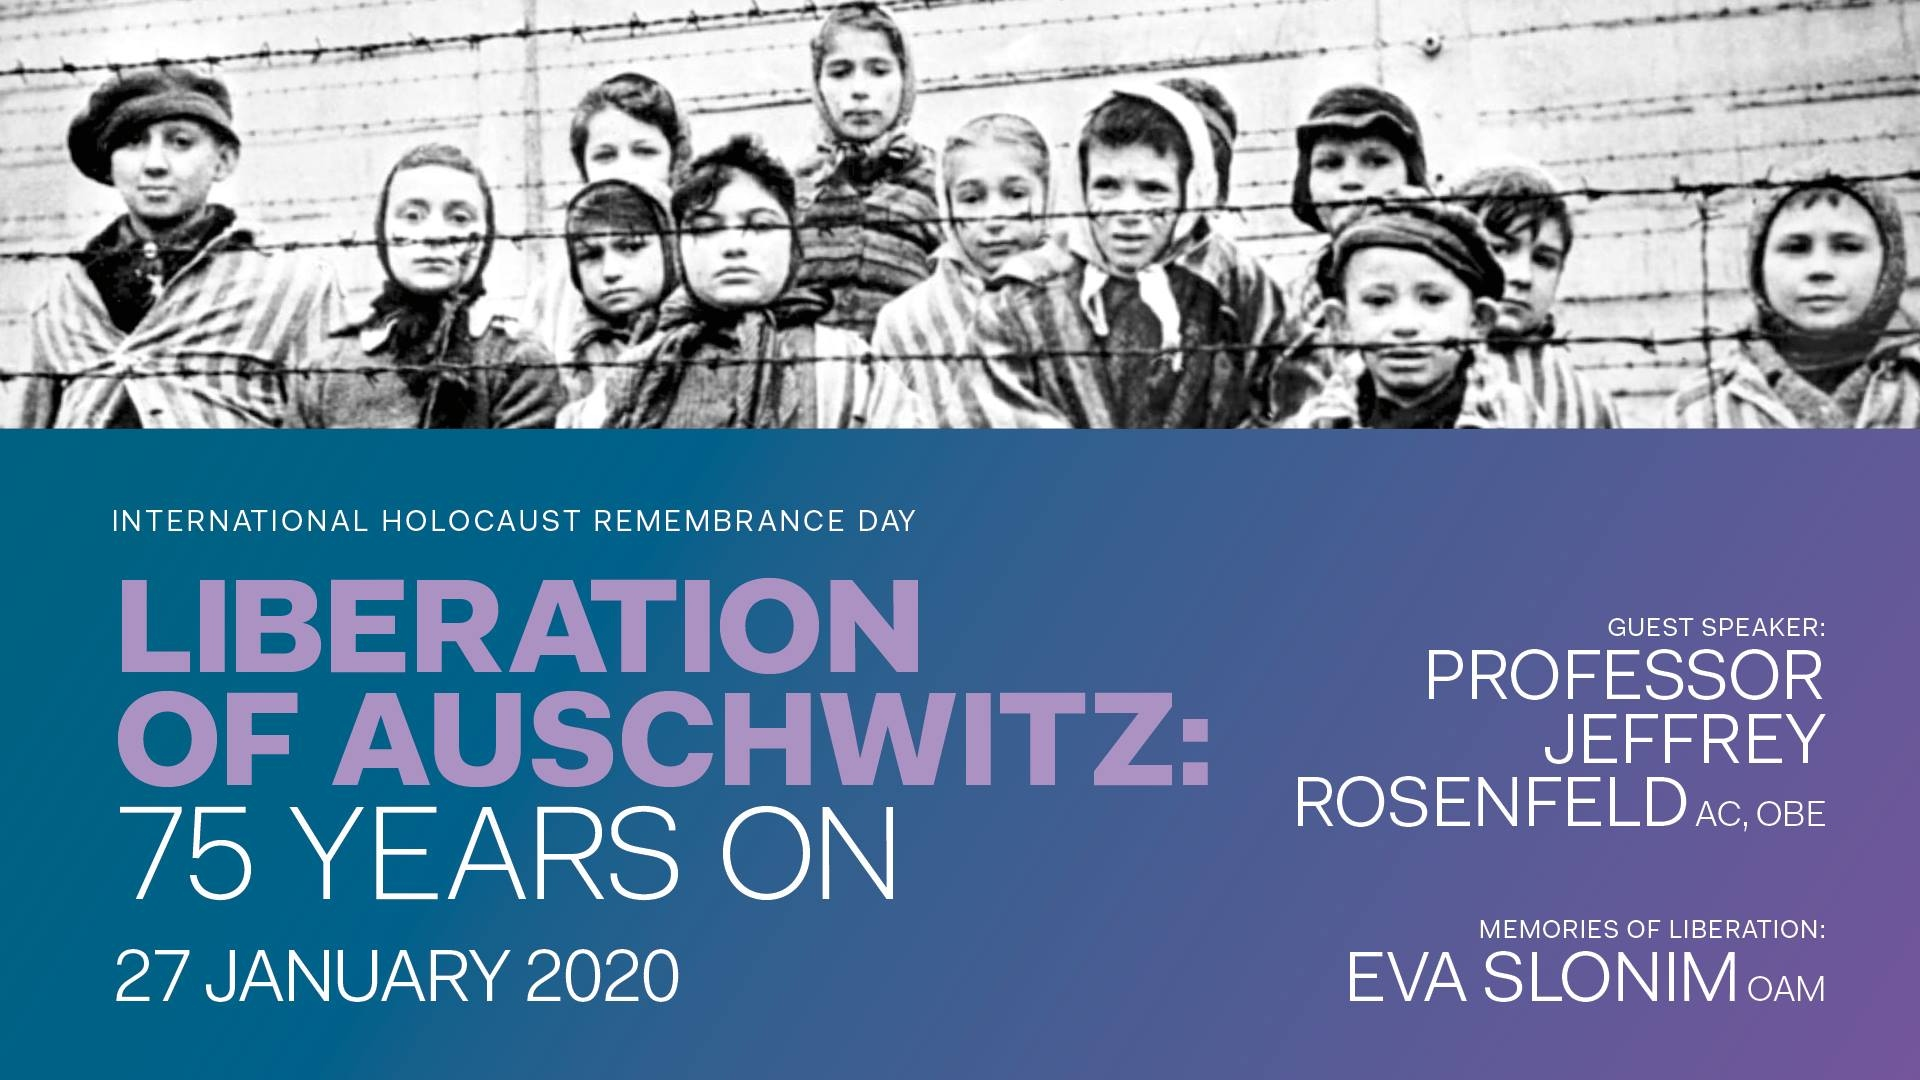 Auschwitz liberation day